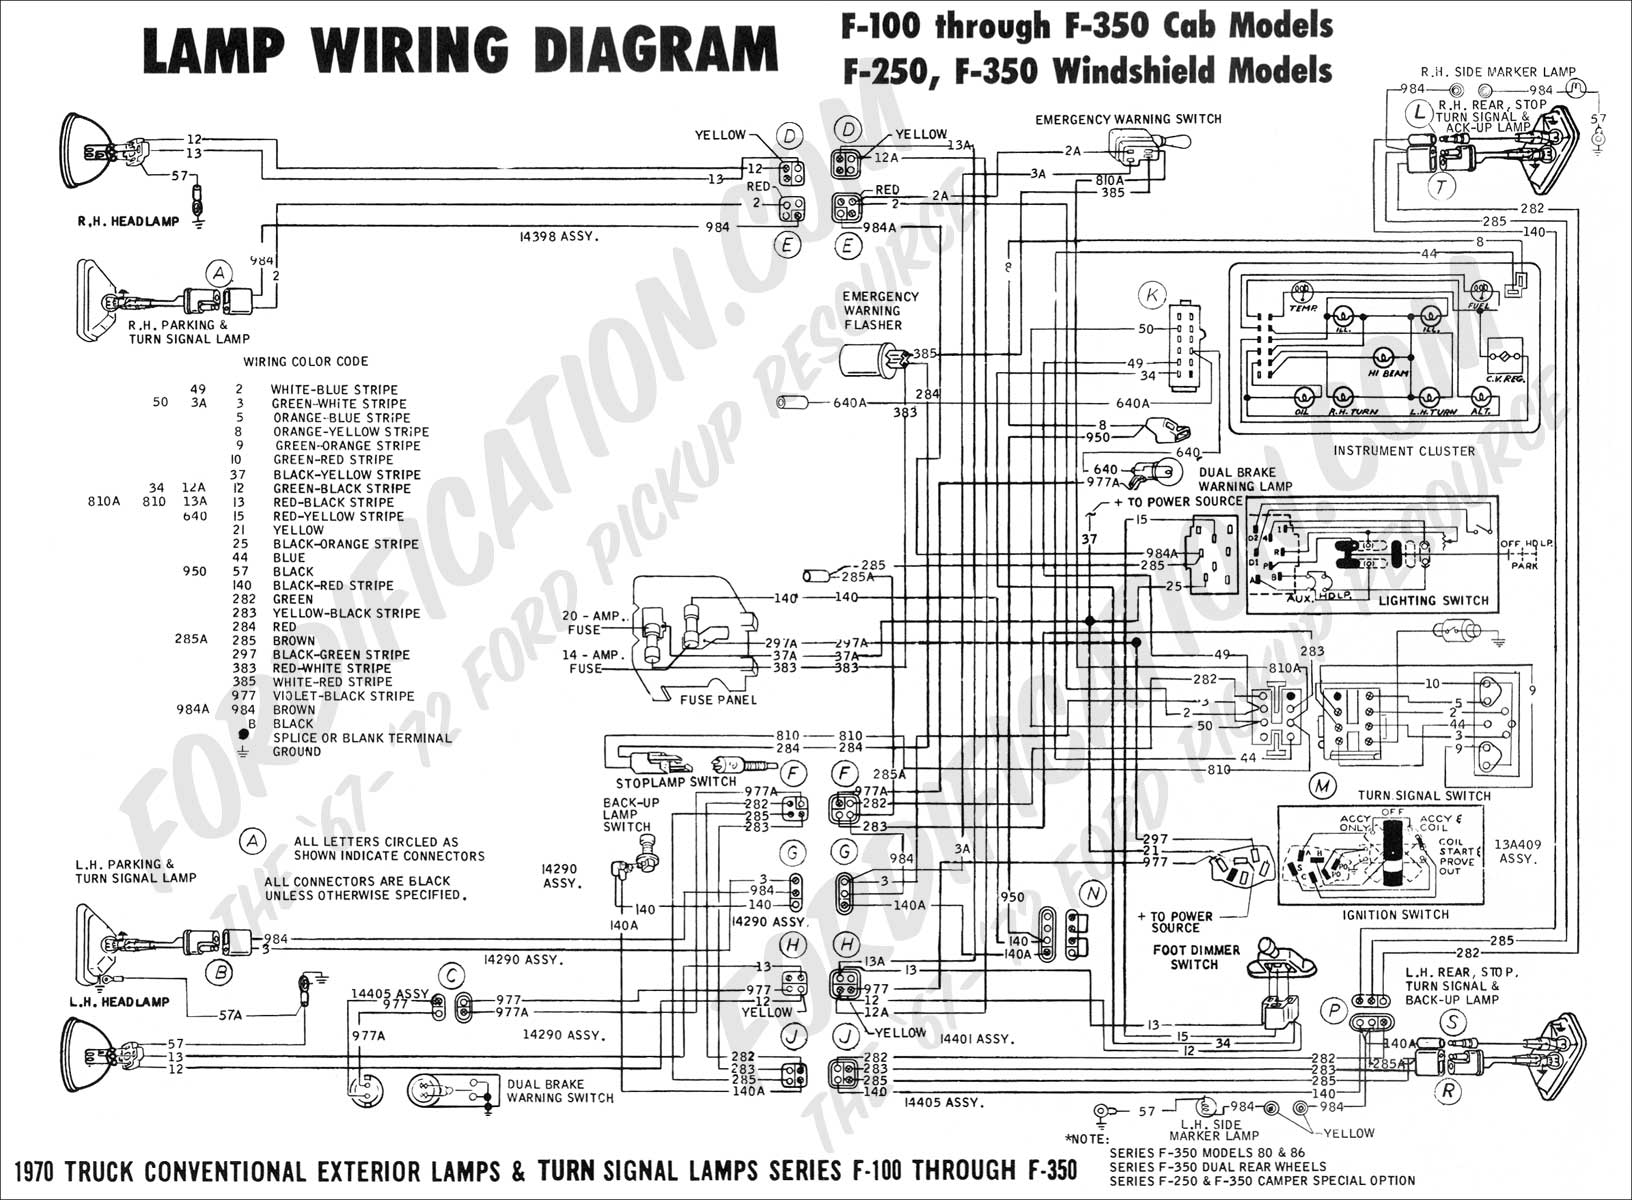 1999 ford f350 trailer wiring diagram meetcolab 1999 ford f350 trailer wiring diagram 1970 f 100 f250 lamp wiring